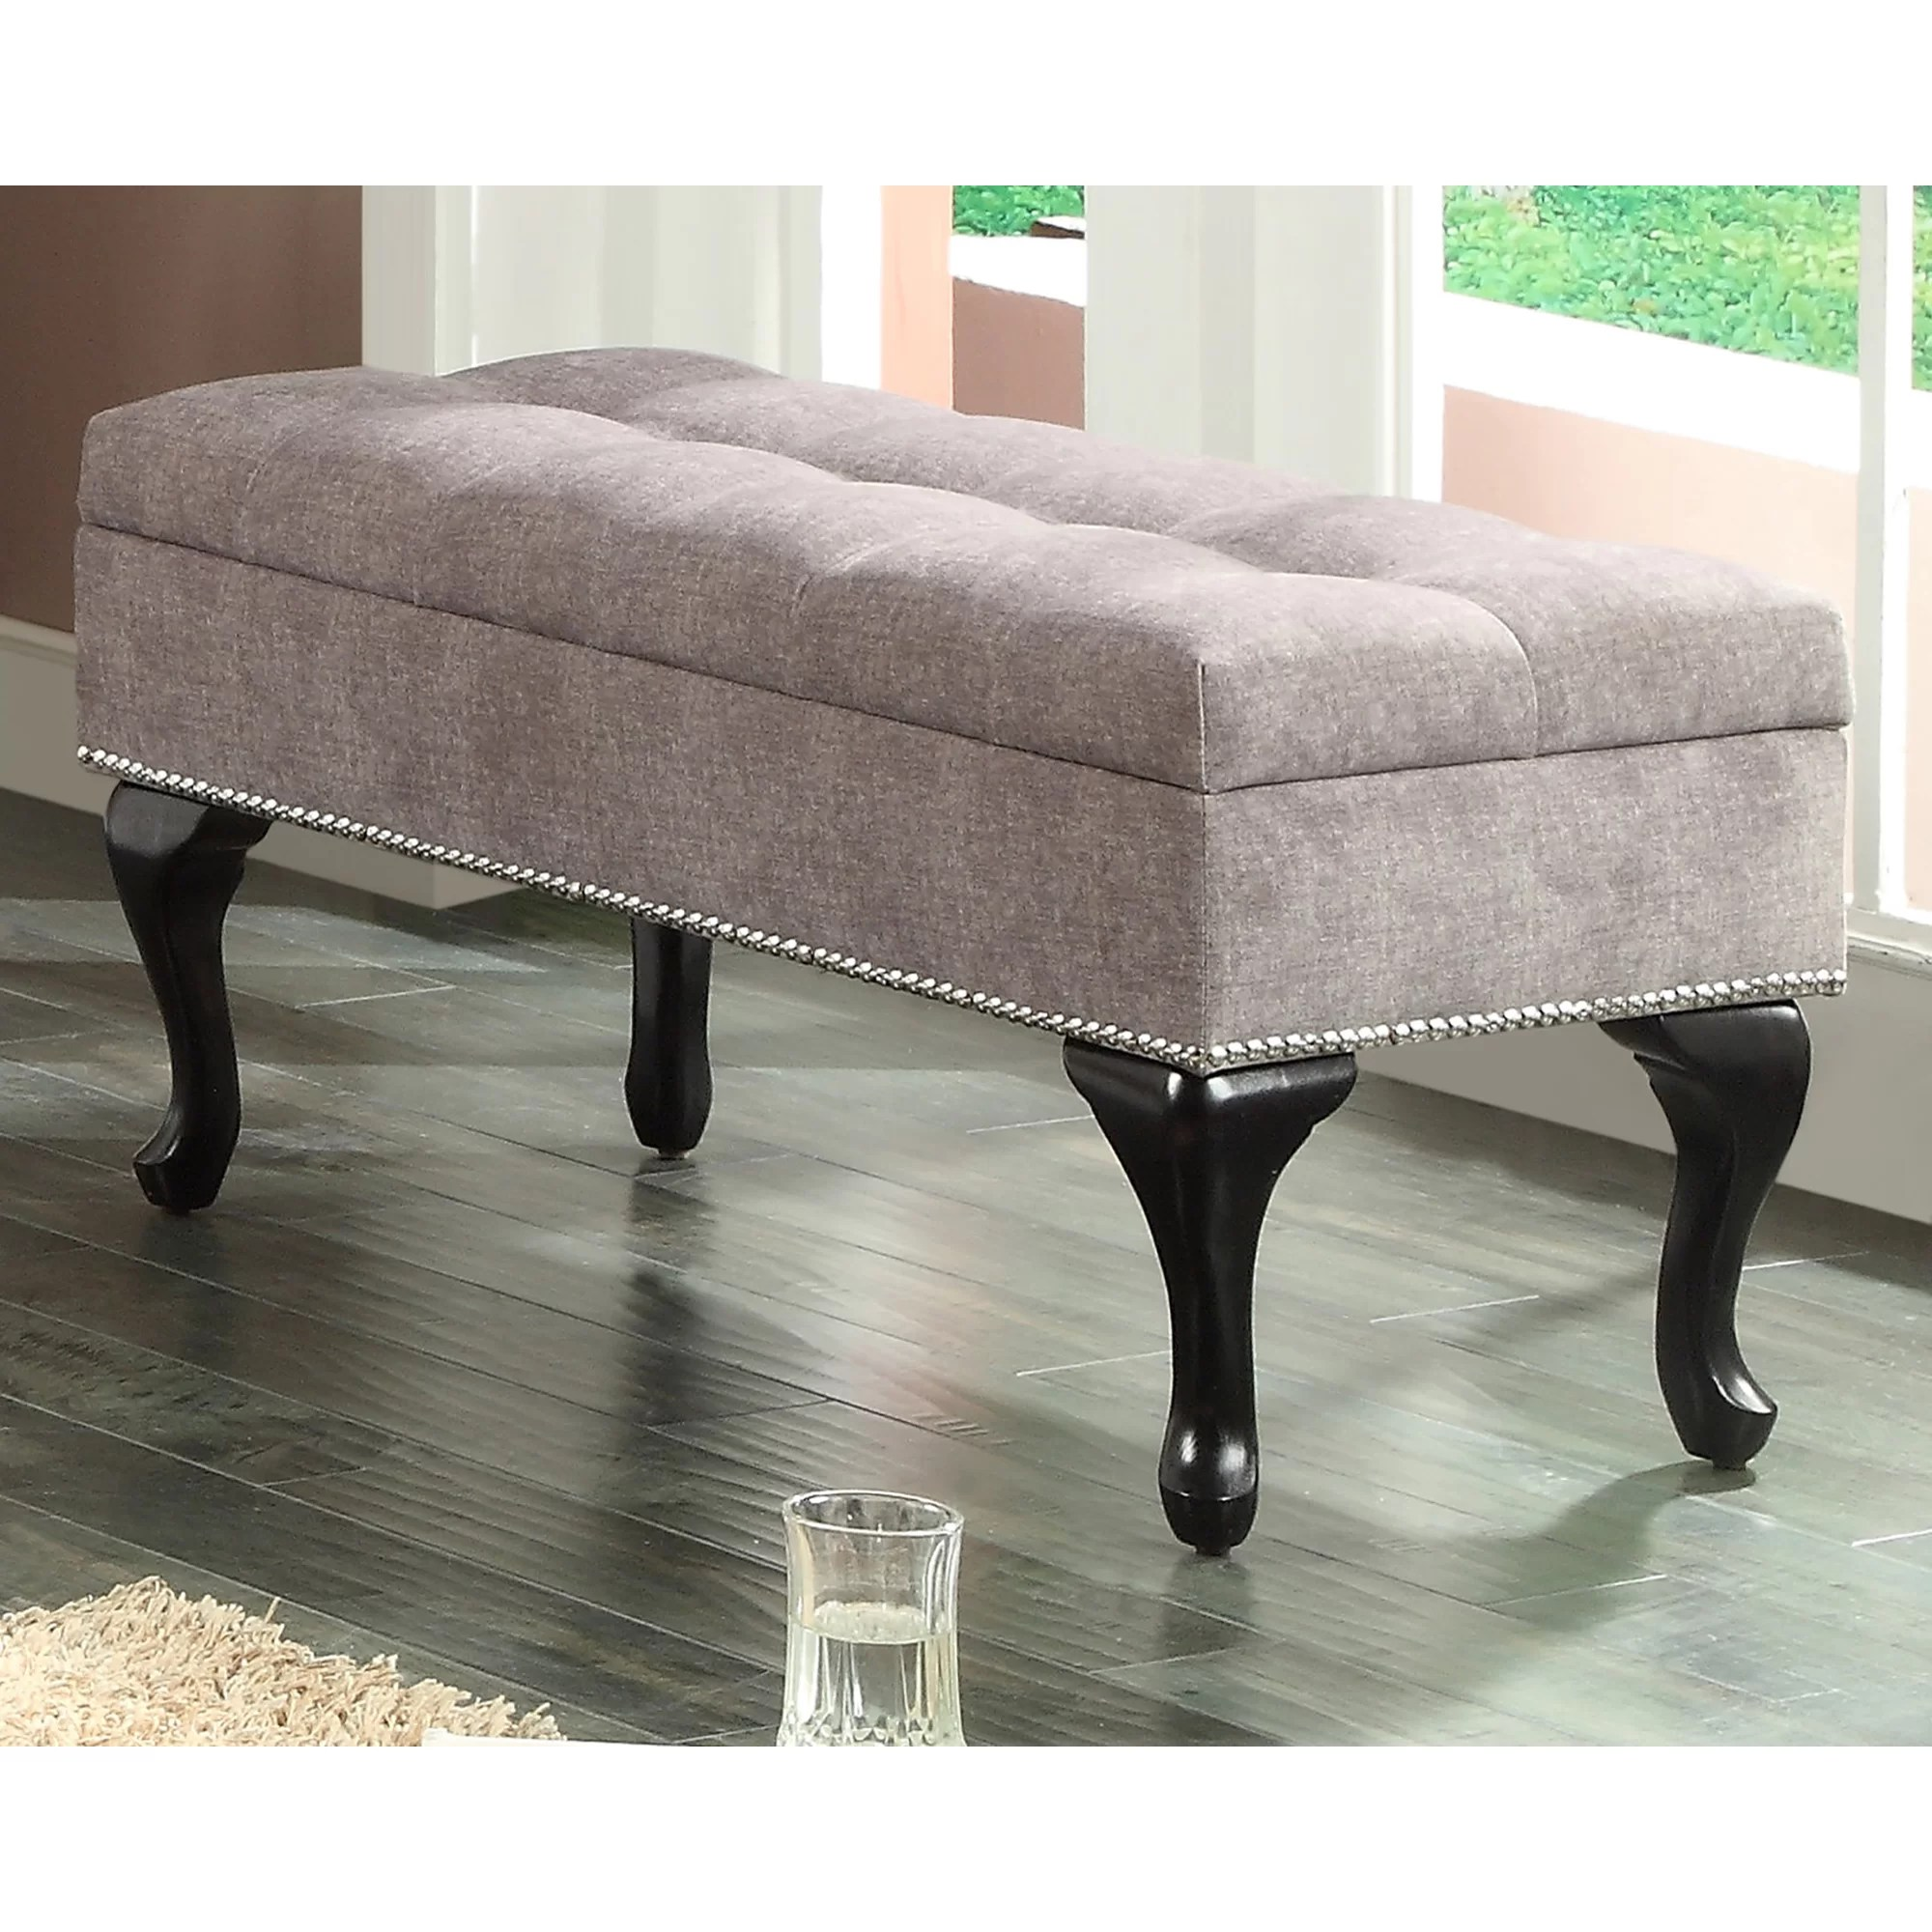 Storage Bench Toronto Worldwide Homefurnishings Fabric Storage Bench With Stud